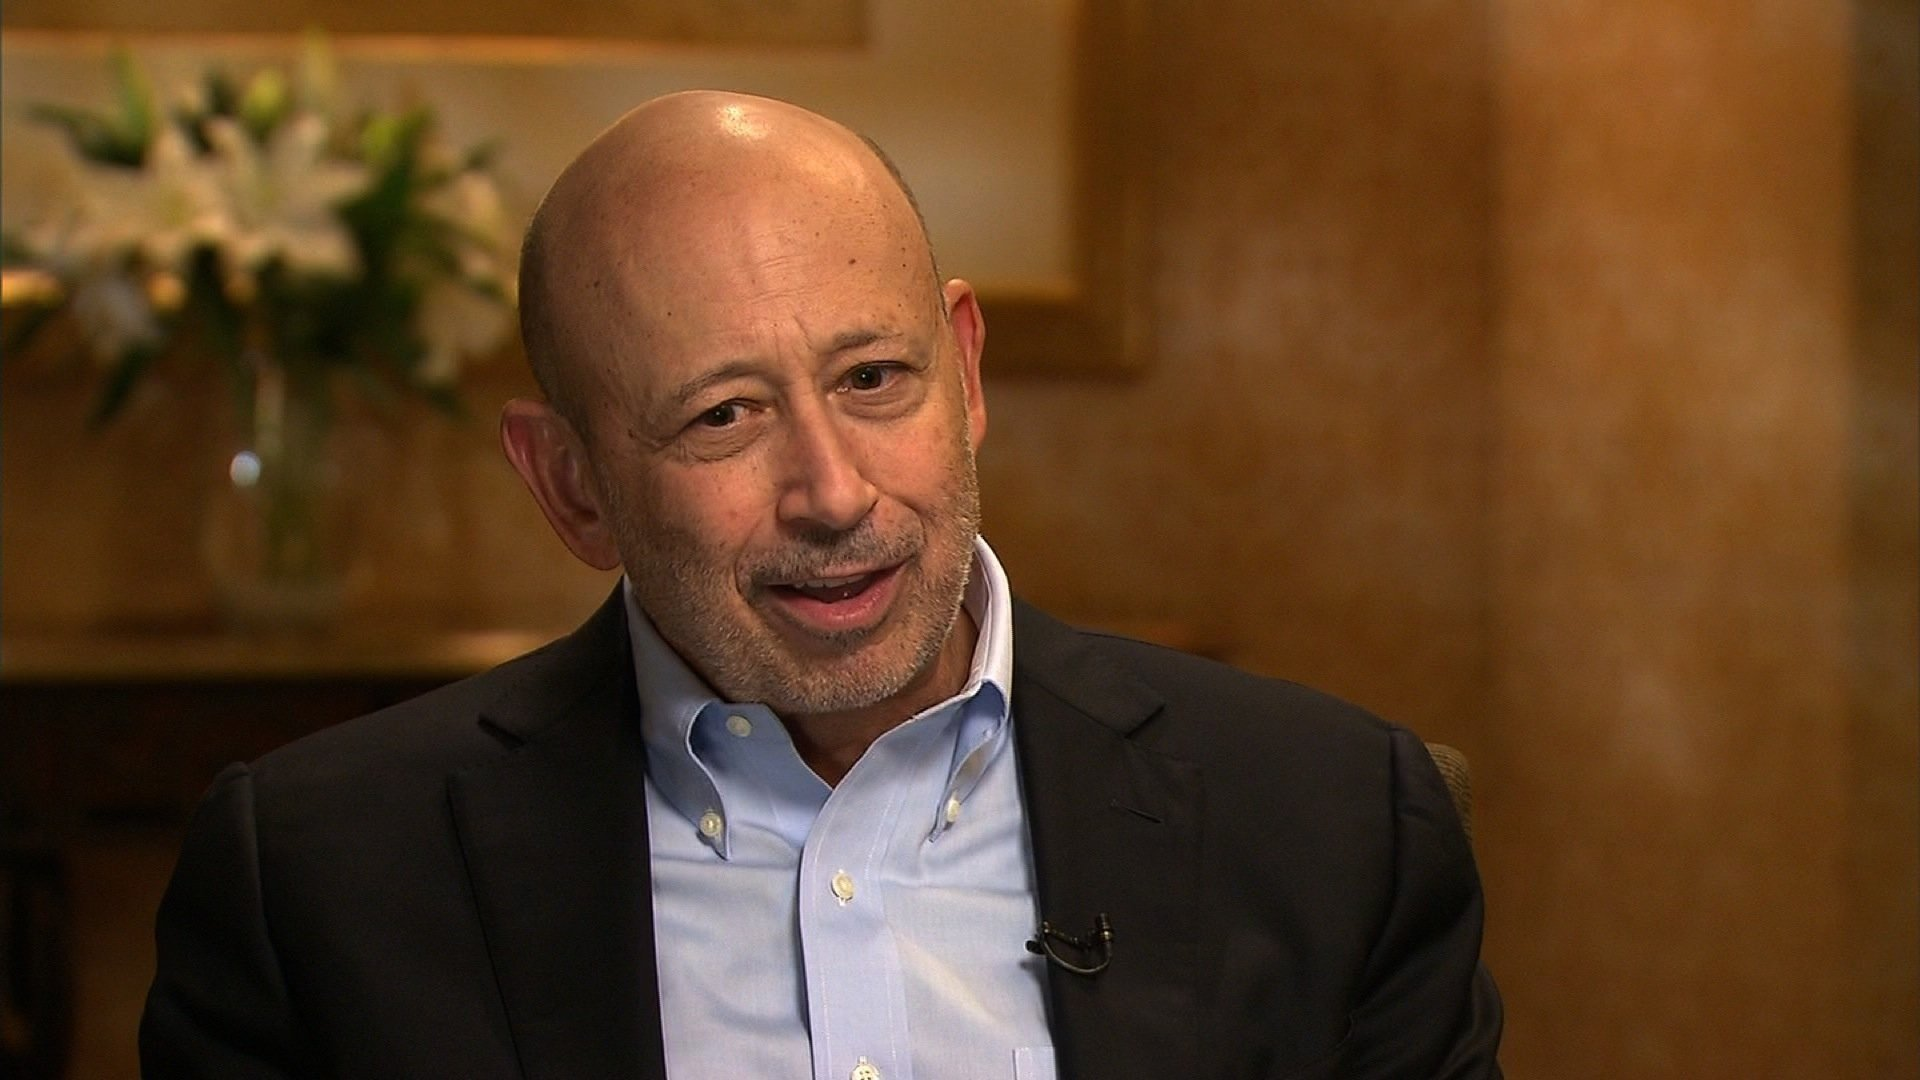 Goldman Sachs CEO Lloyd Blankfein is reportedly prepping his exit